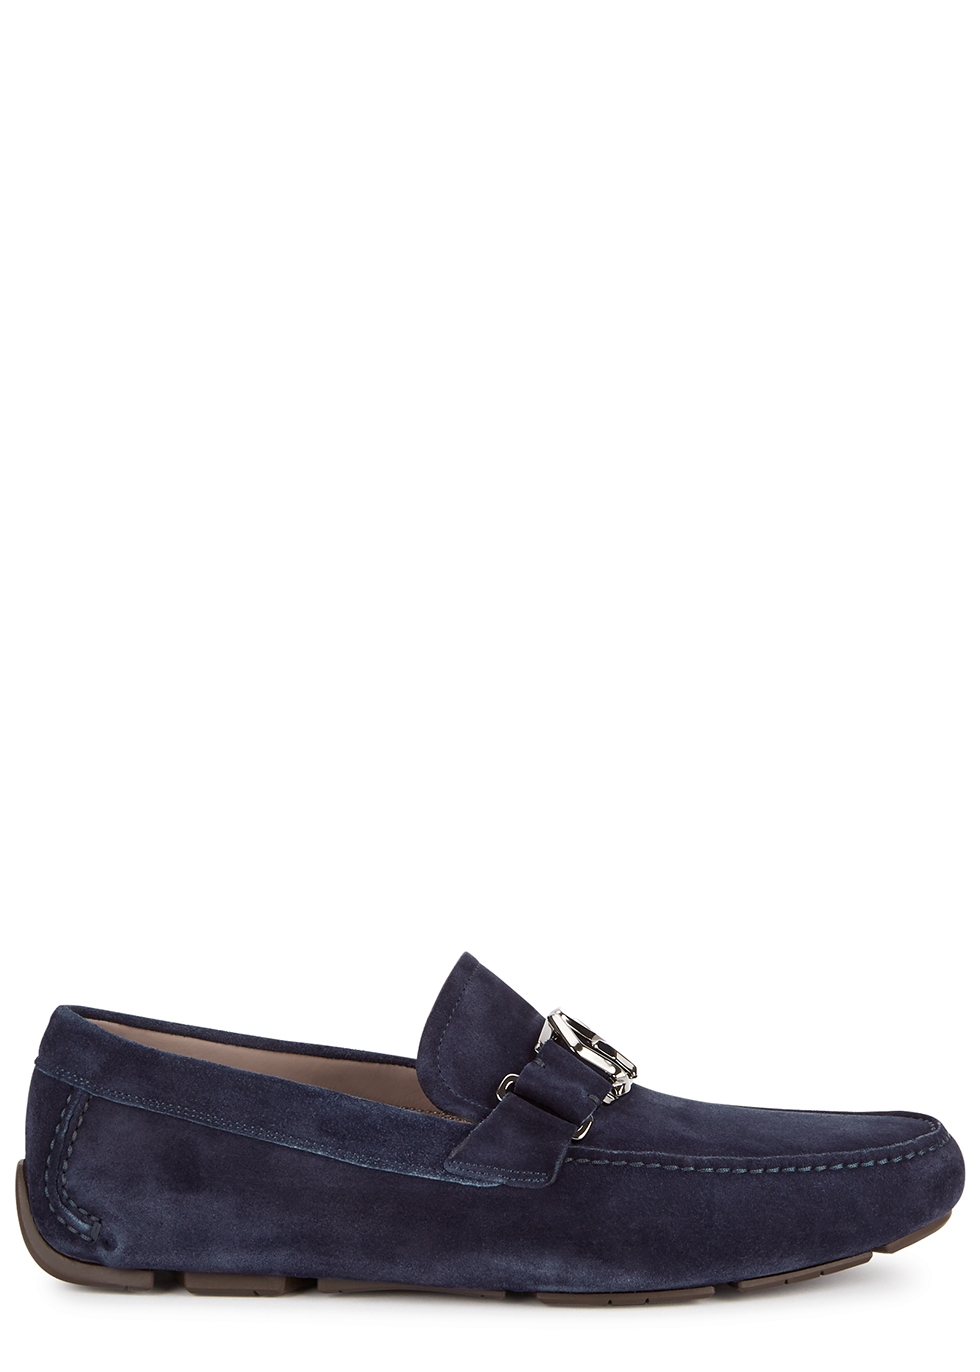 Peter navy suede driving shoes